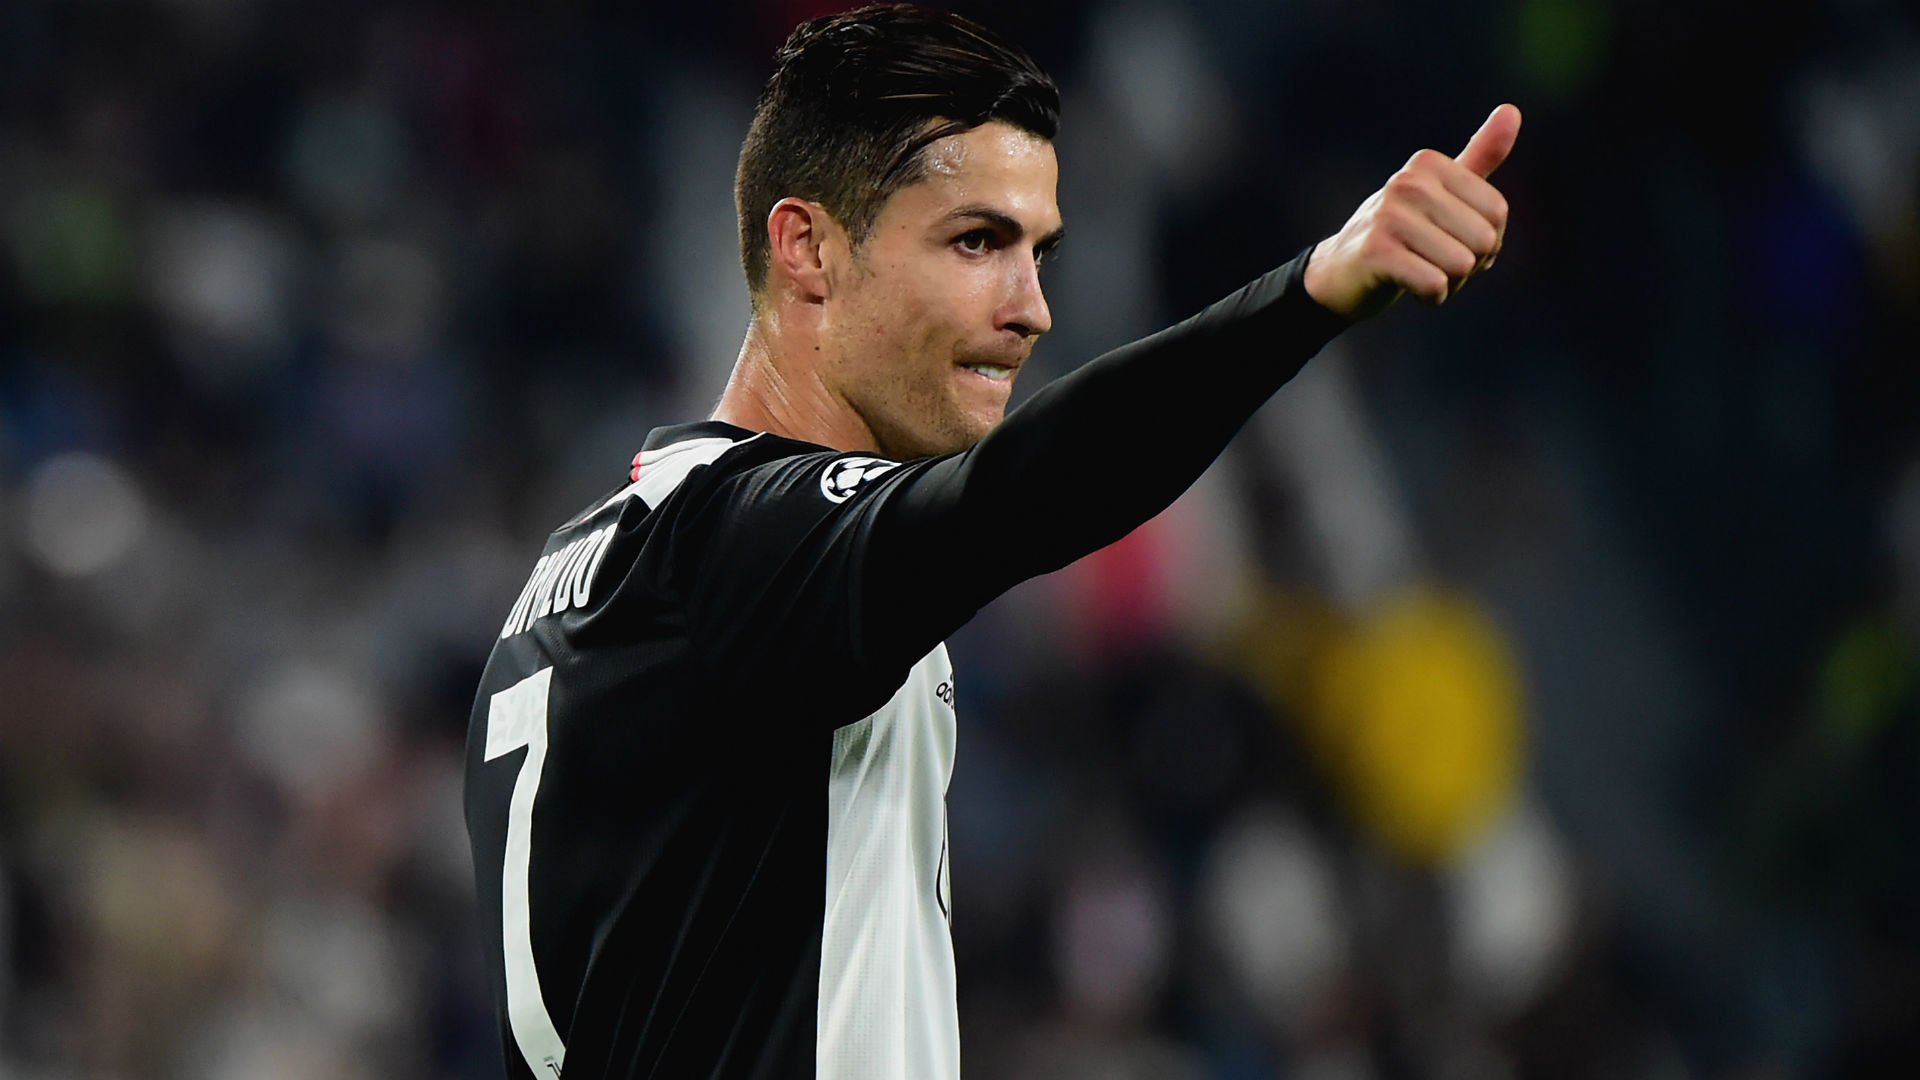 Cristiano Ronaldo may be rested for Lecce as Juve boss Sarri ponders changes